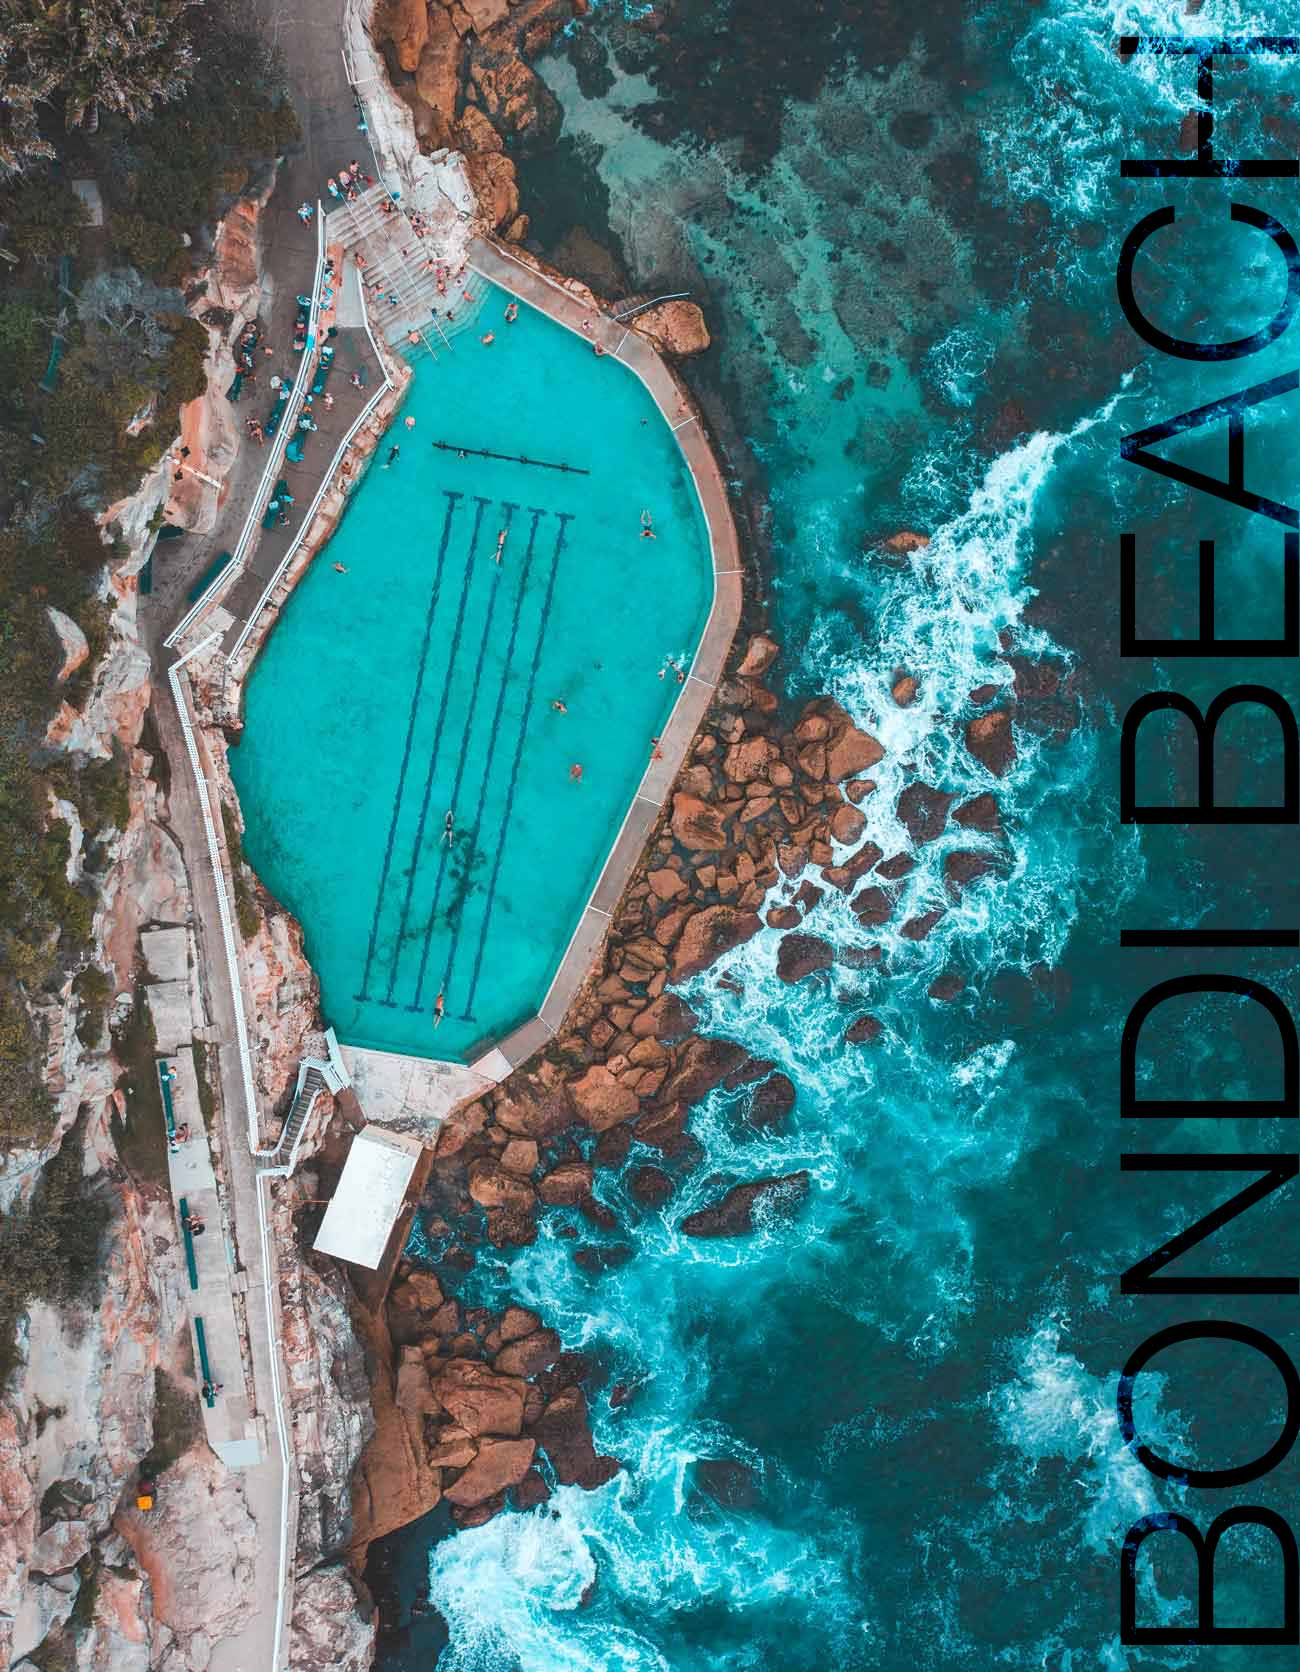 ocean swimming pool drone photo